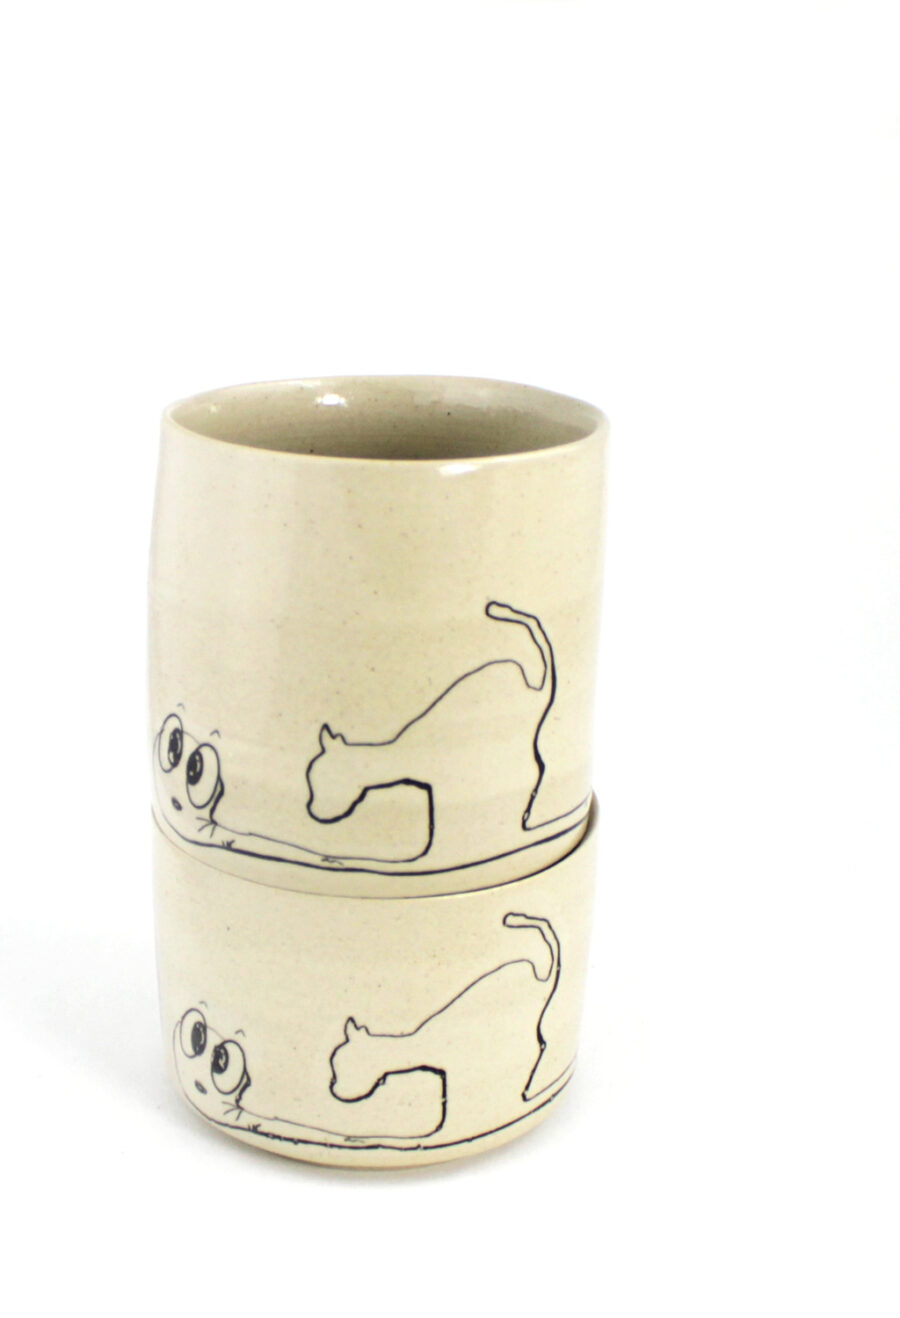 witziges-becherset-keramik-katze-the-worm-ate-nummer-7-katze-my-deer-illustrated-ceramics